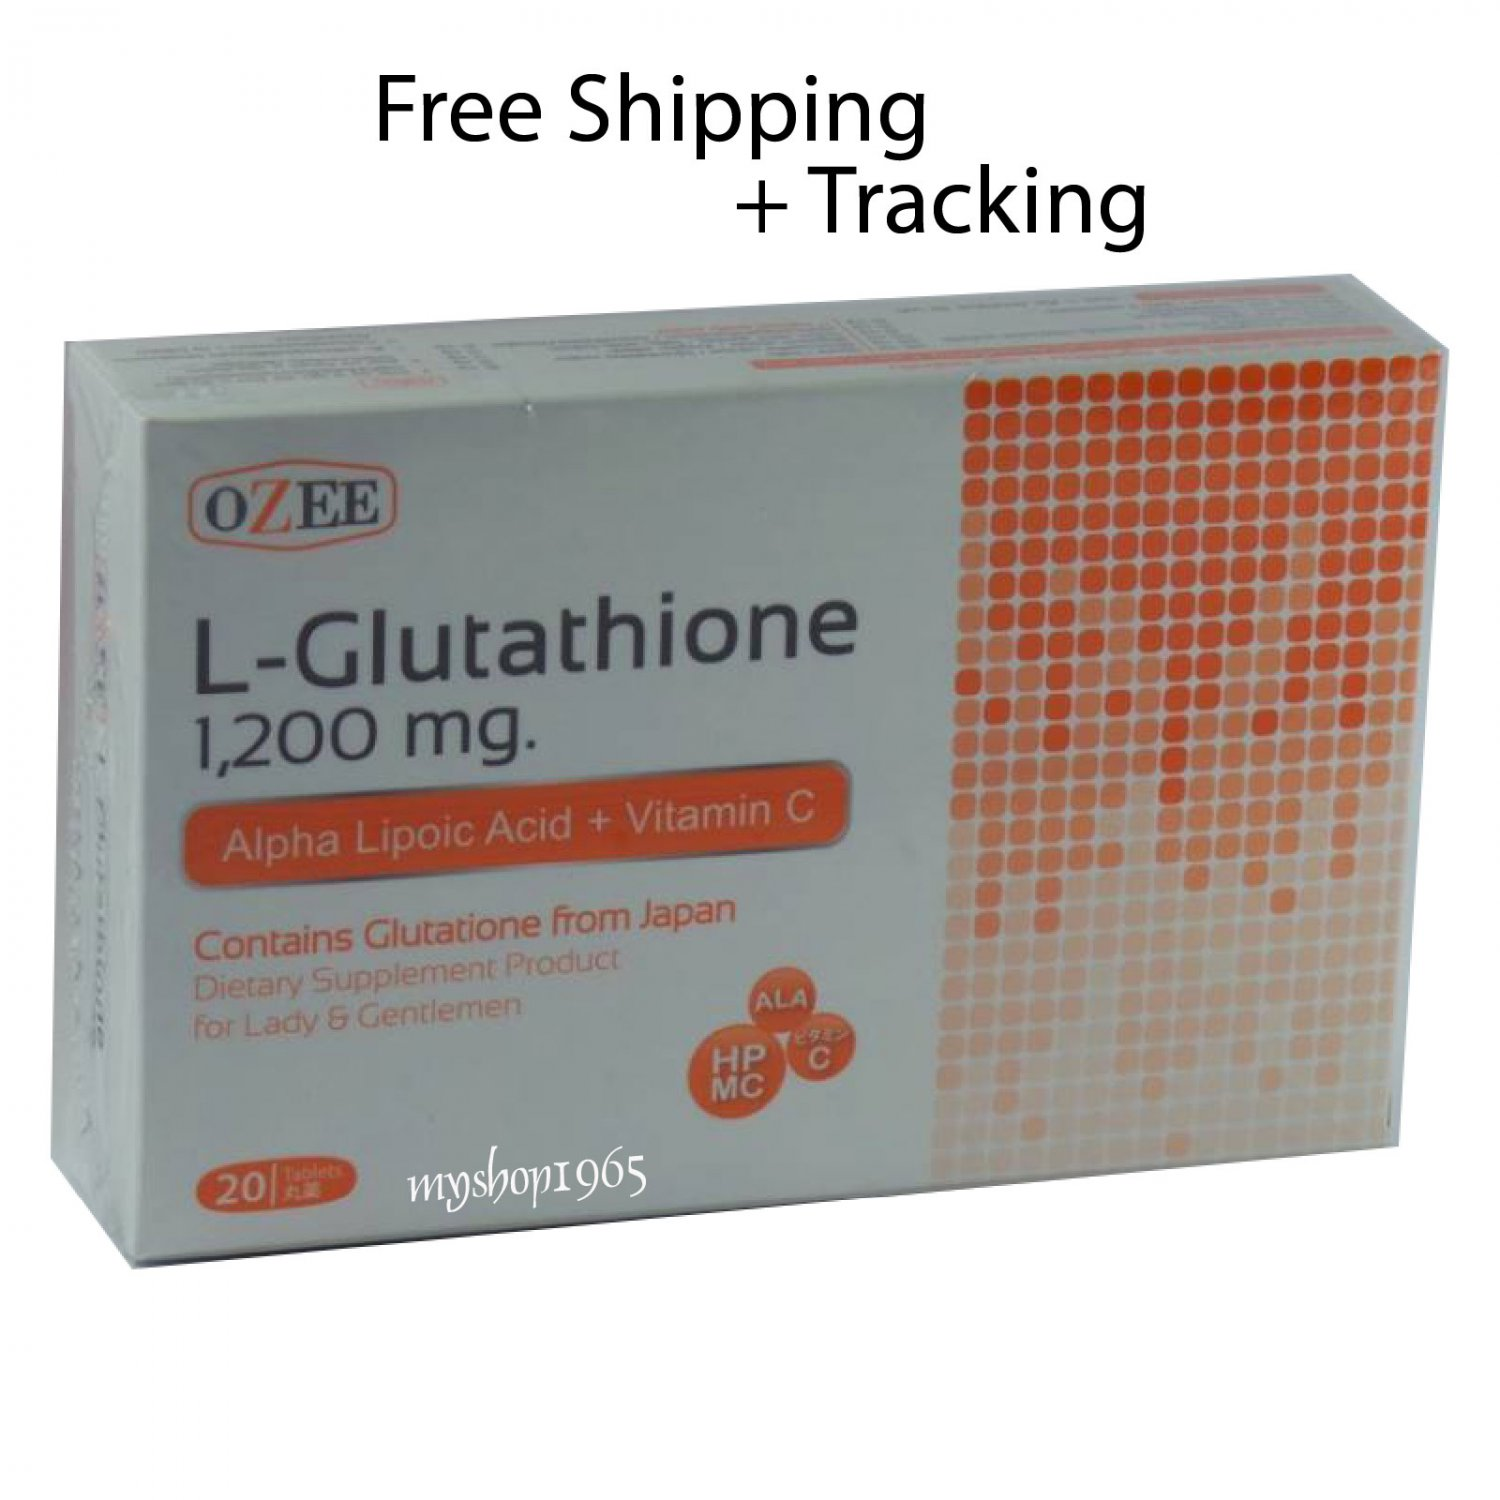 OZEE L-GLUTATHIONE 1200MG WITH VITAMIN C SUPPLEMENTS